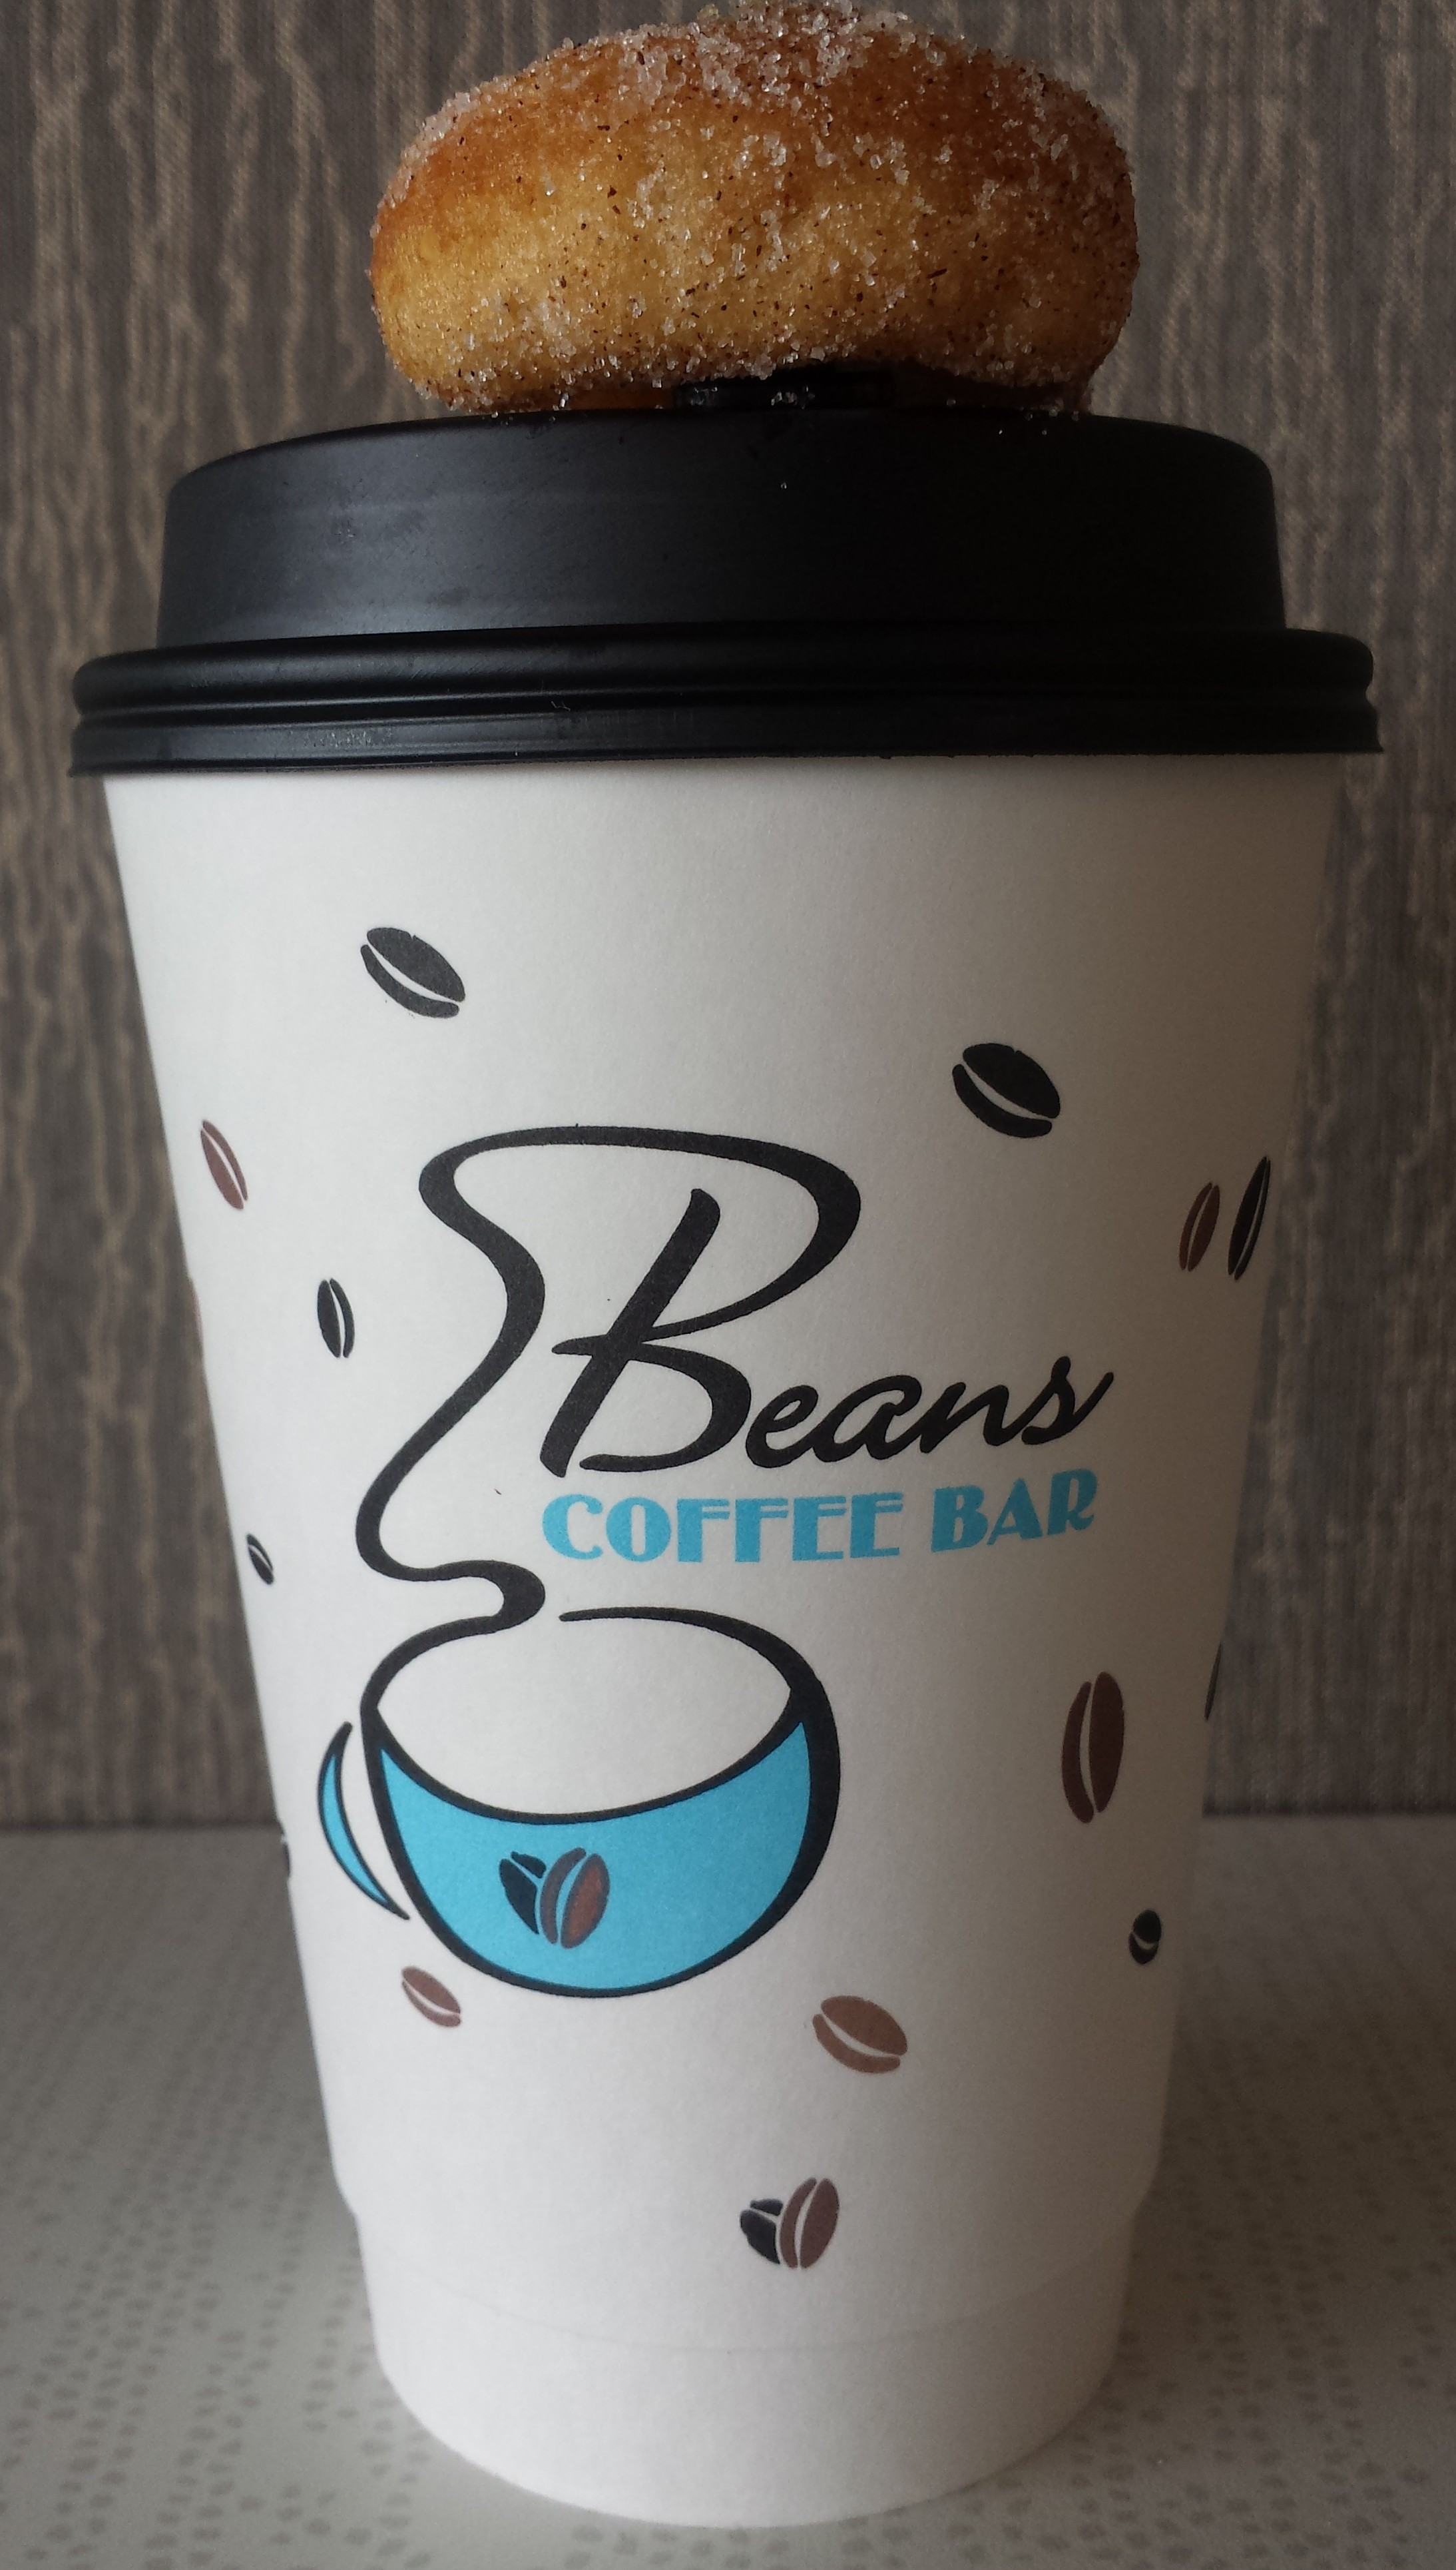 Beans Coffee Bar Fargo Provides Many Delicious Coffee